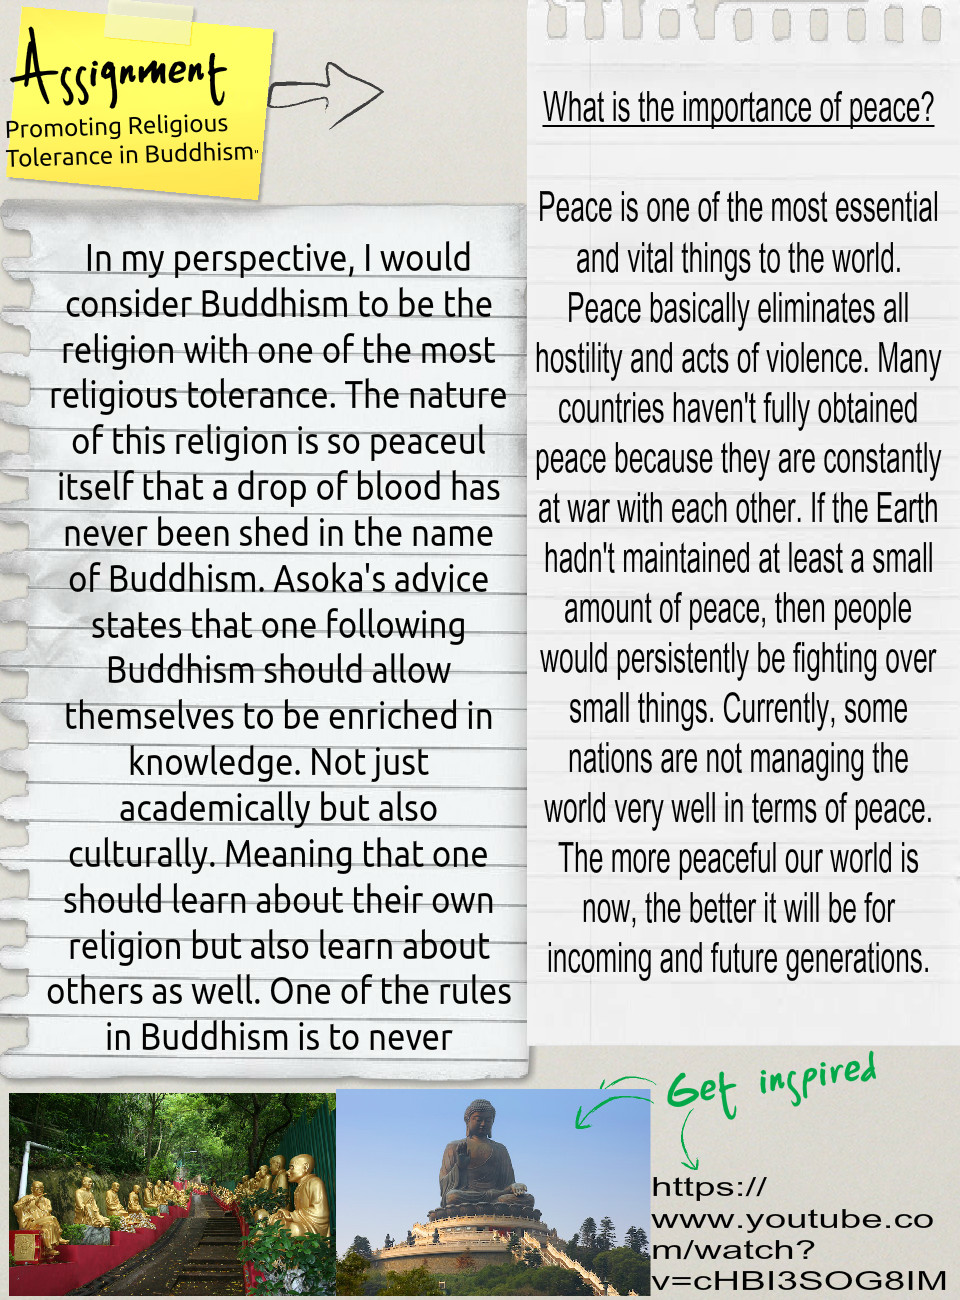 Promoting Religious Tolerance In Buddhism